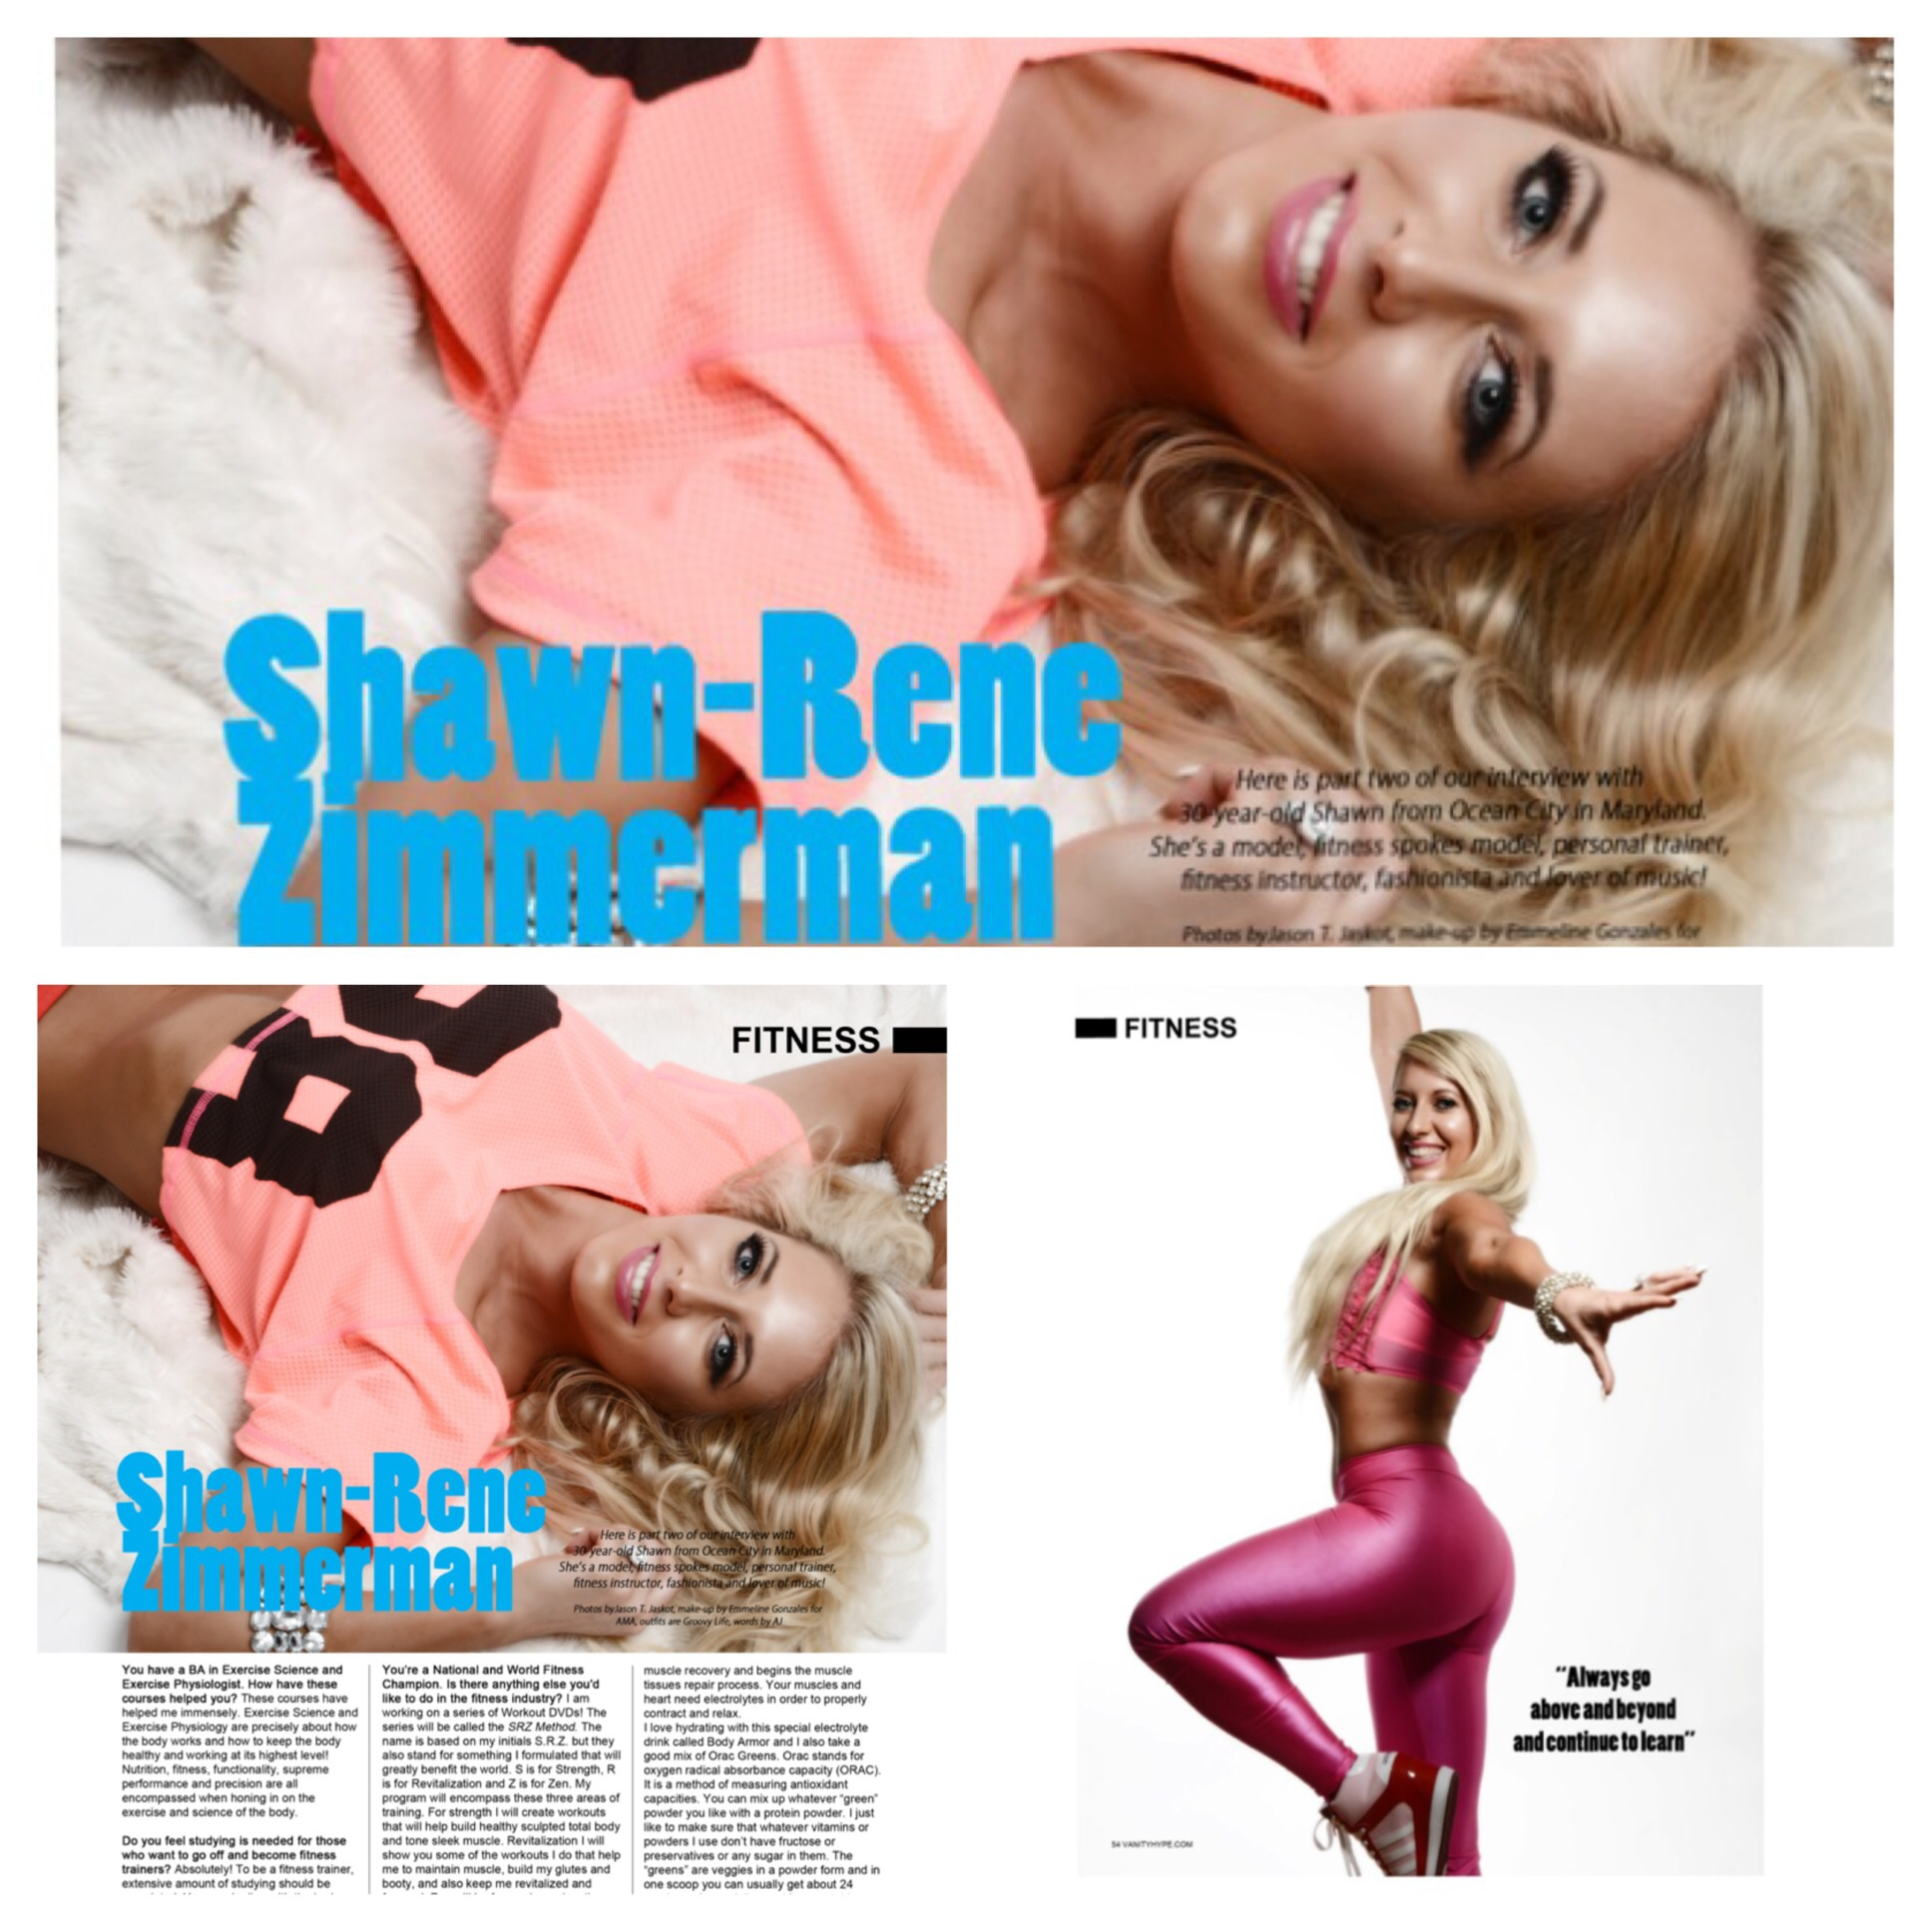 Vanity hype magazine fashion lifestyle shape fitness Shawn Rene Zimmerman